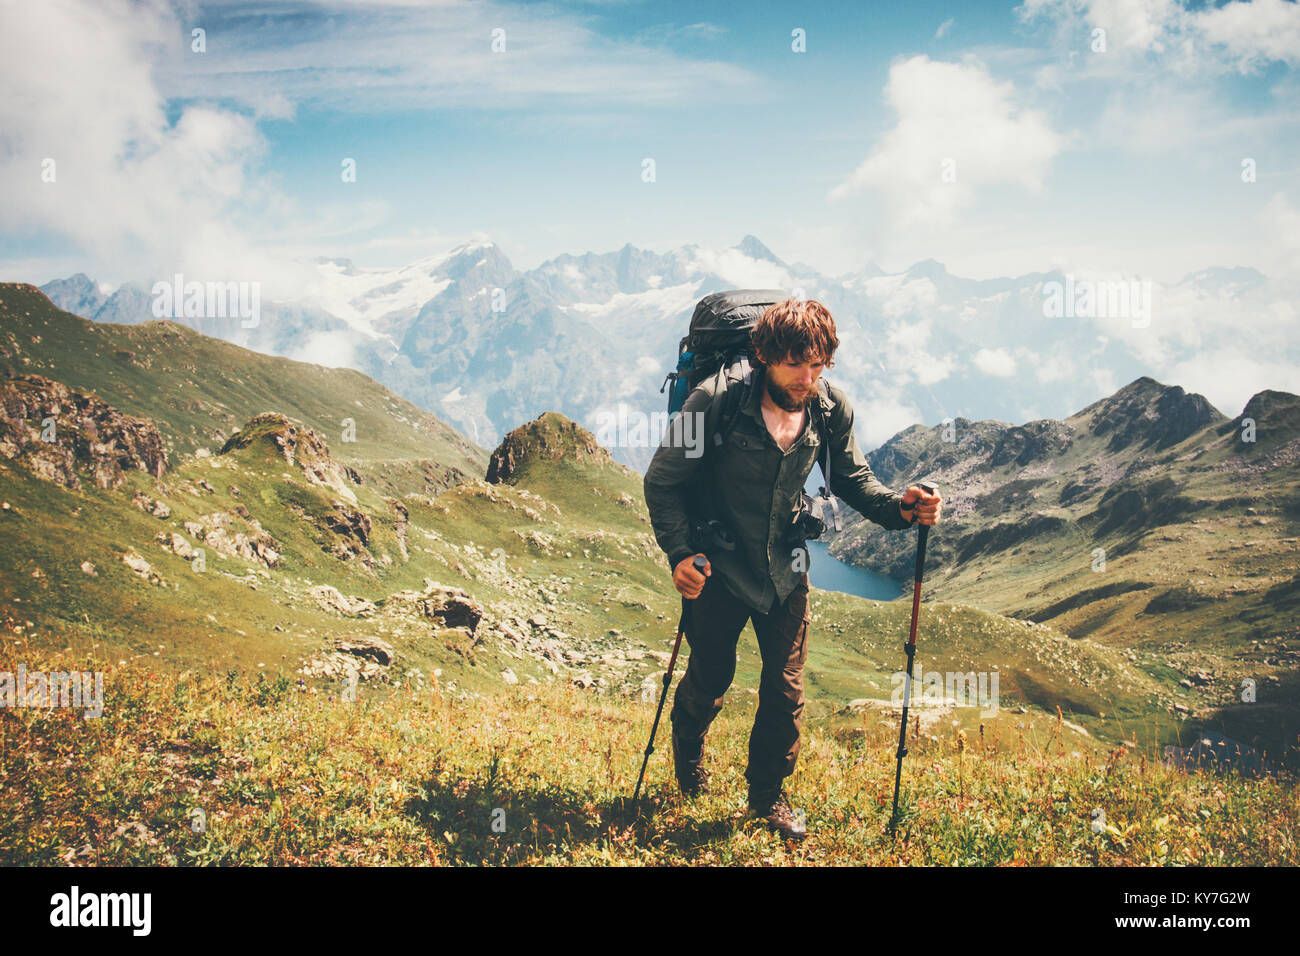 Man mountaineering with backpack Traveling Lifestyle concept adventure summer vacations outdoor mountains range - Stock Image